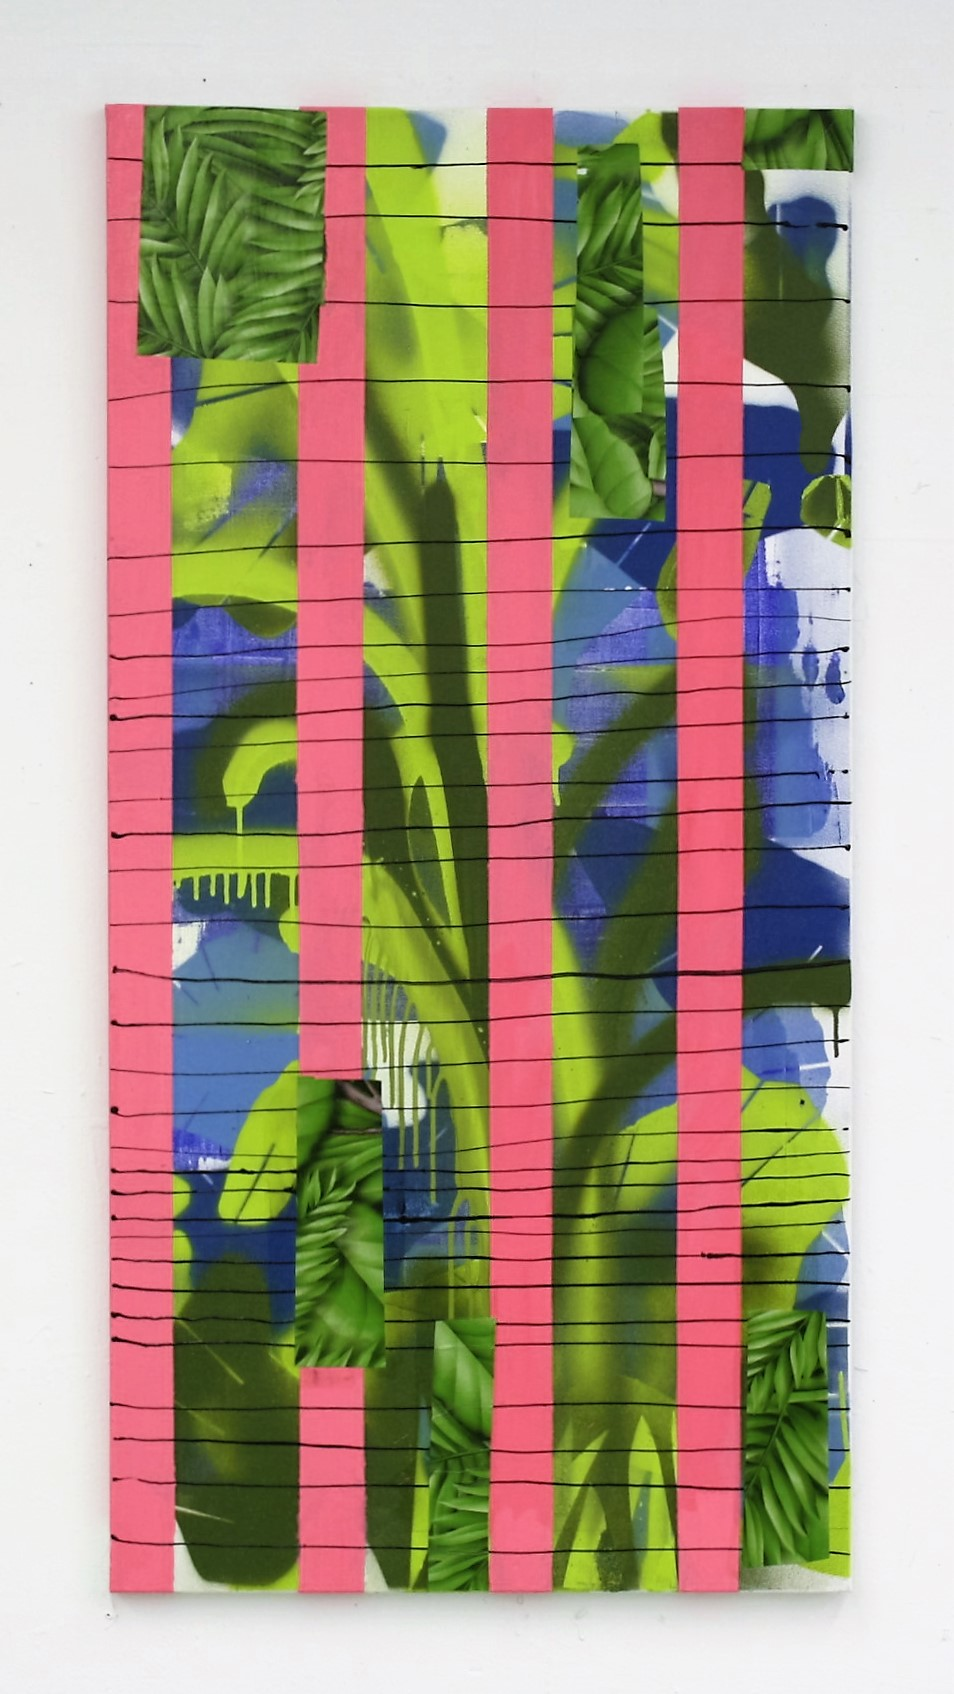 Fresh and sweet II_Mixed media in canvas_48 in x 24 in_2016.JPG